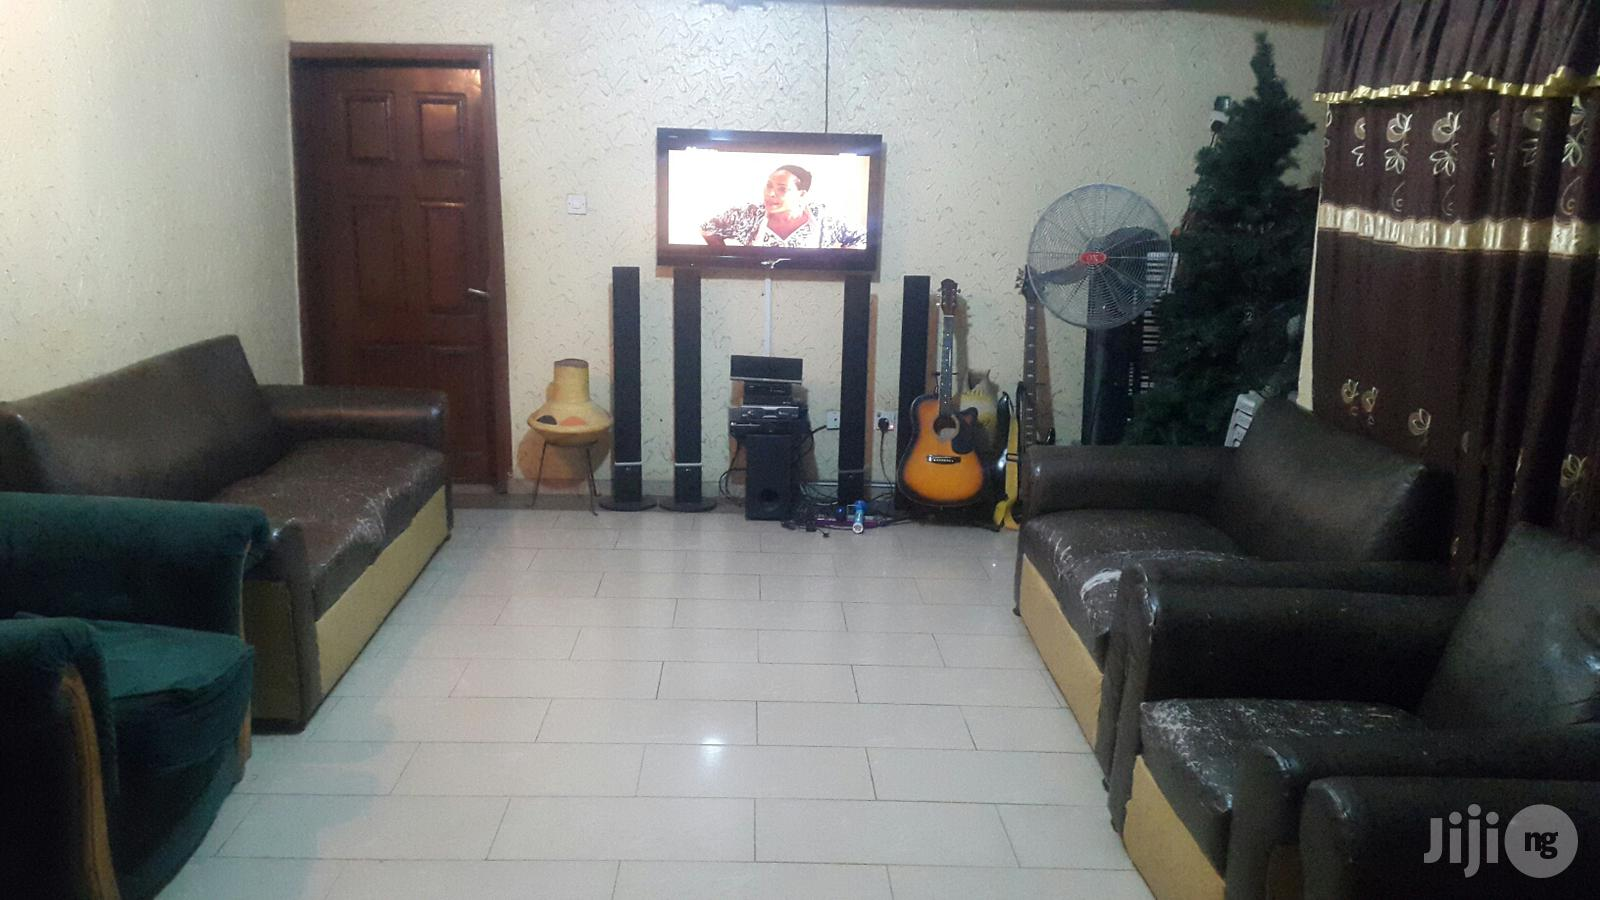 4 Bedroom Bungalow for Sale in Oke Afa Magboro